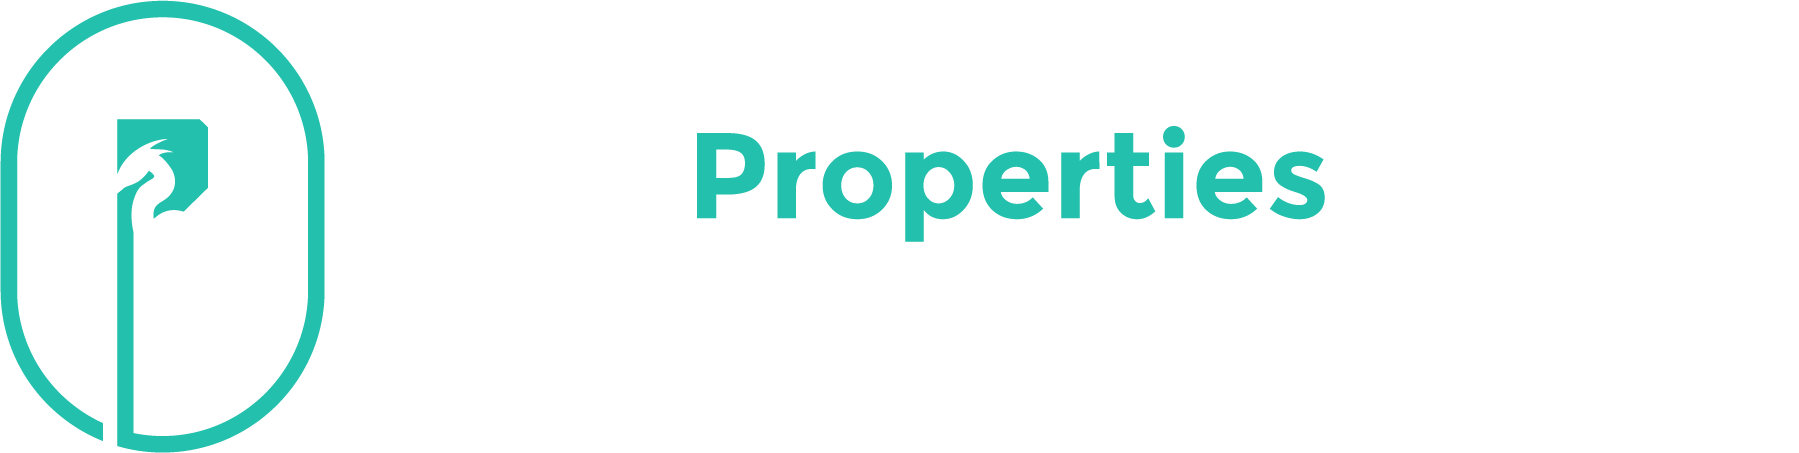 best properties offered logo